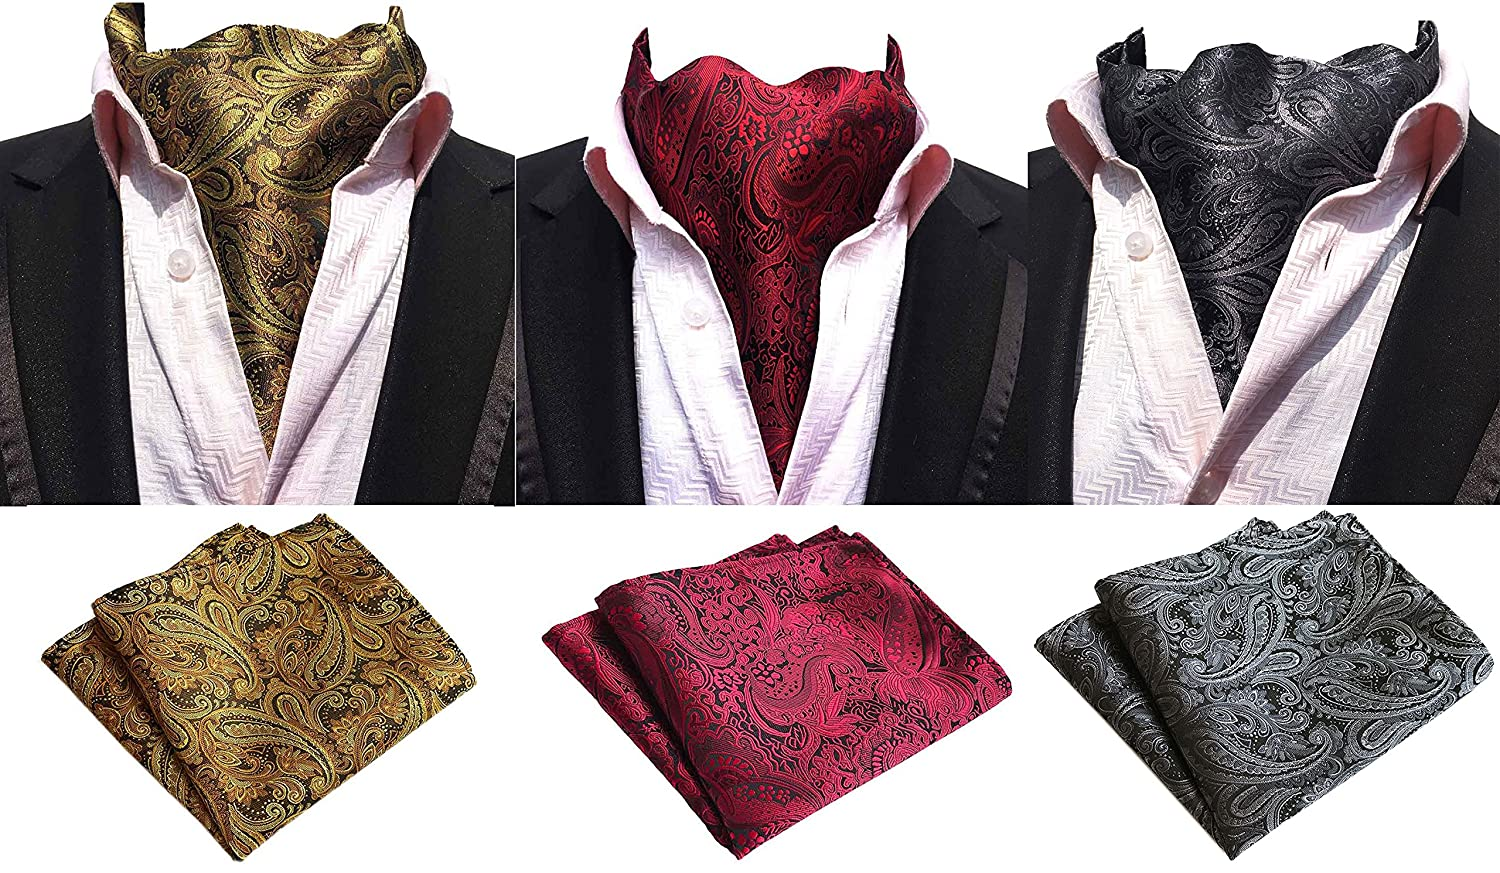 MOHSLEE Mens Luxury Paisley 3 Pack Cravat Silk Ascot Scarf Tie Pocket Square Set Fz137